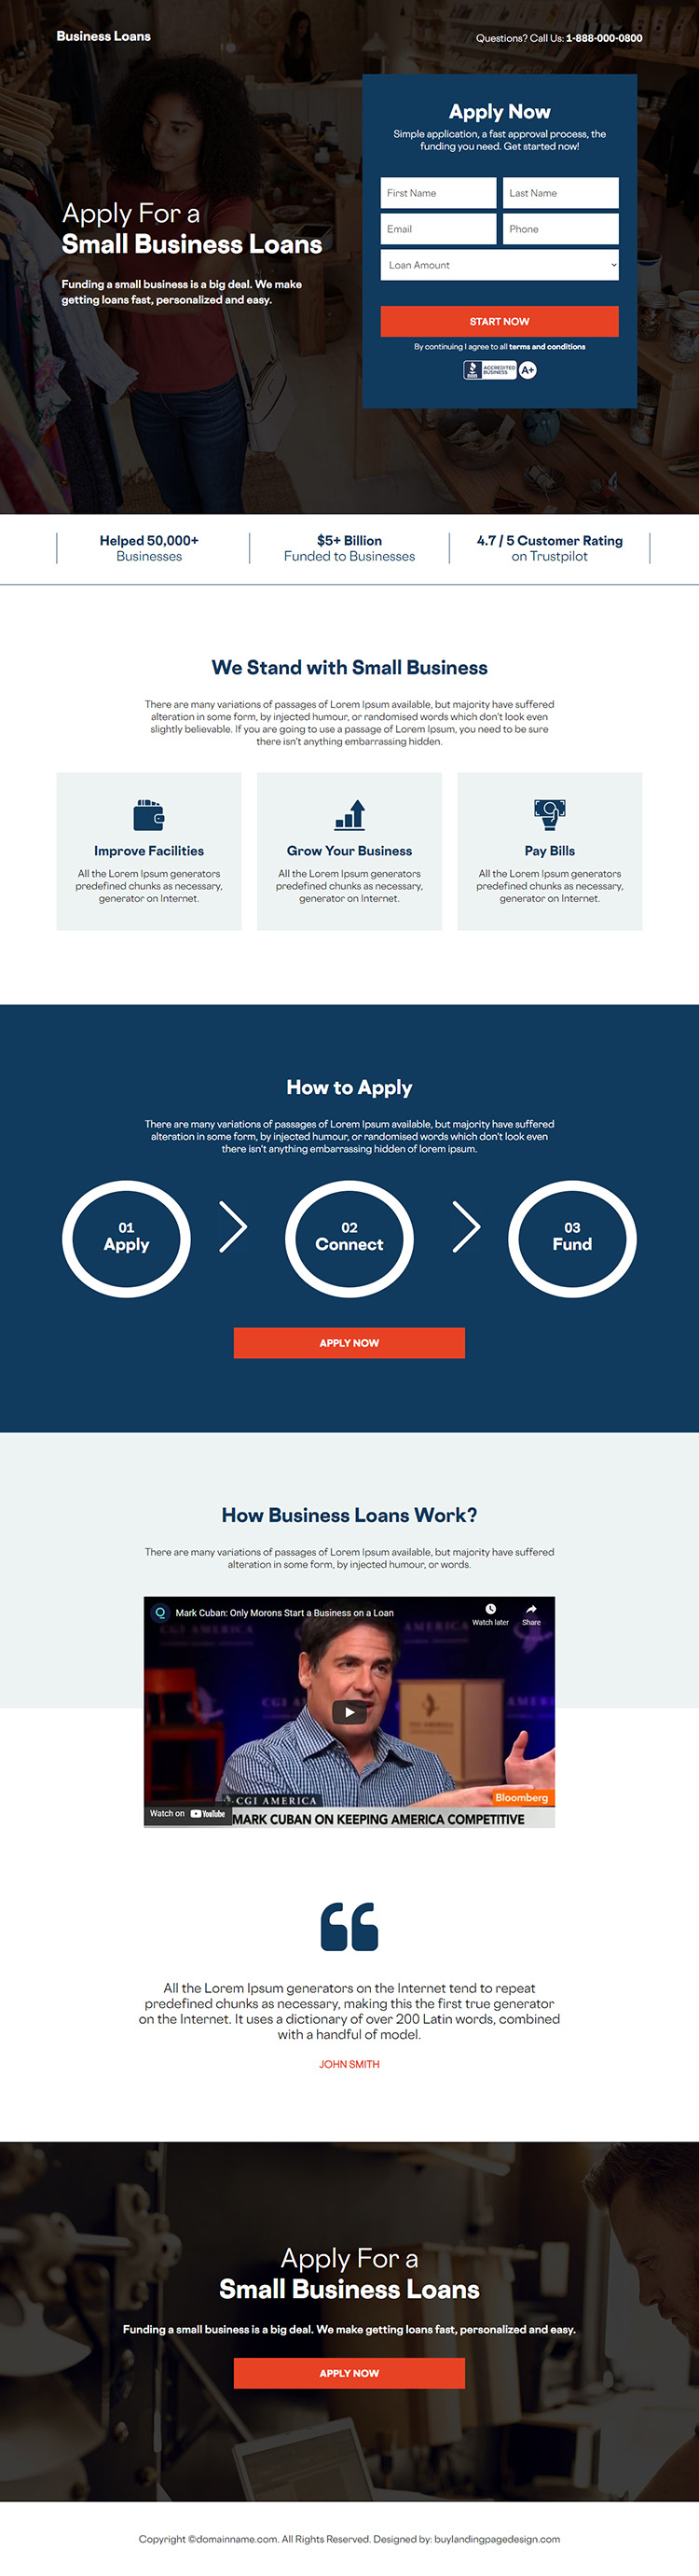 small business loan online application responsive landing page design